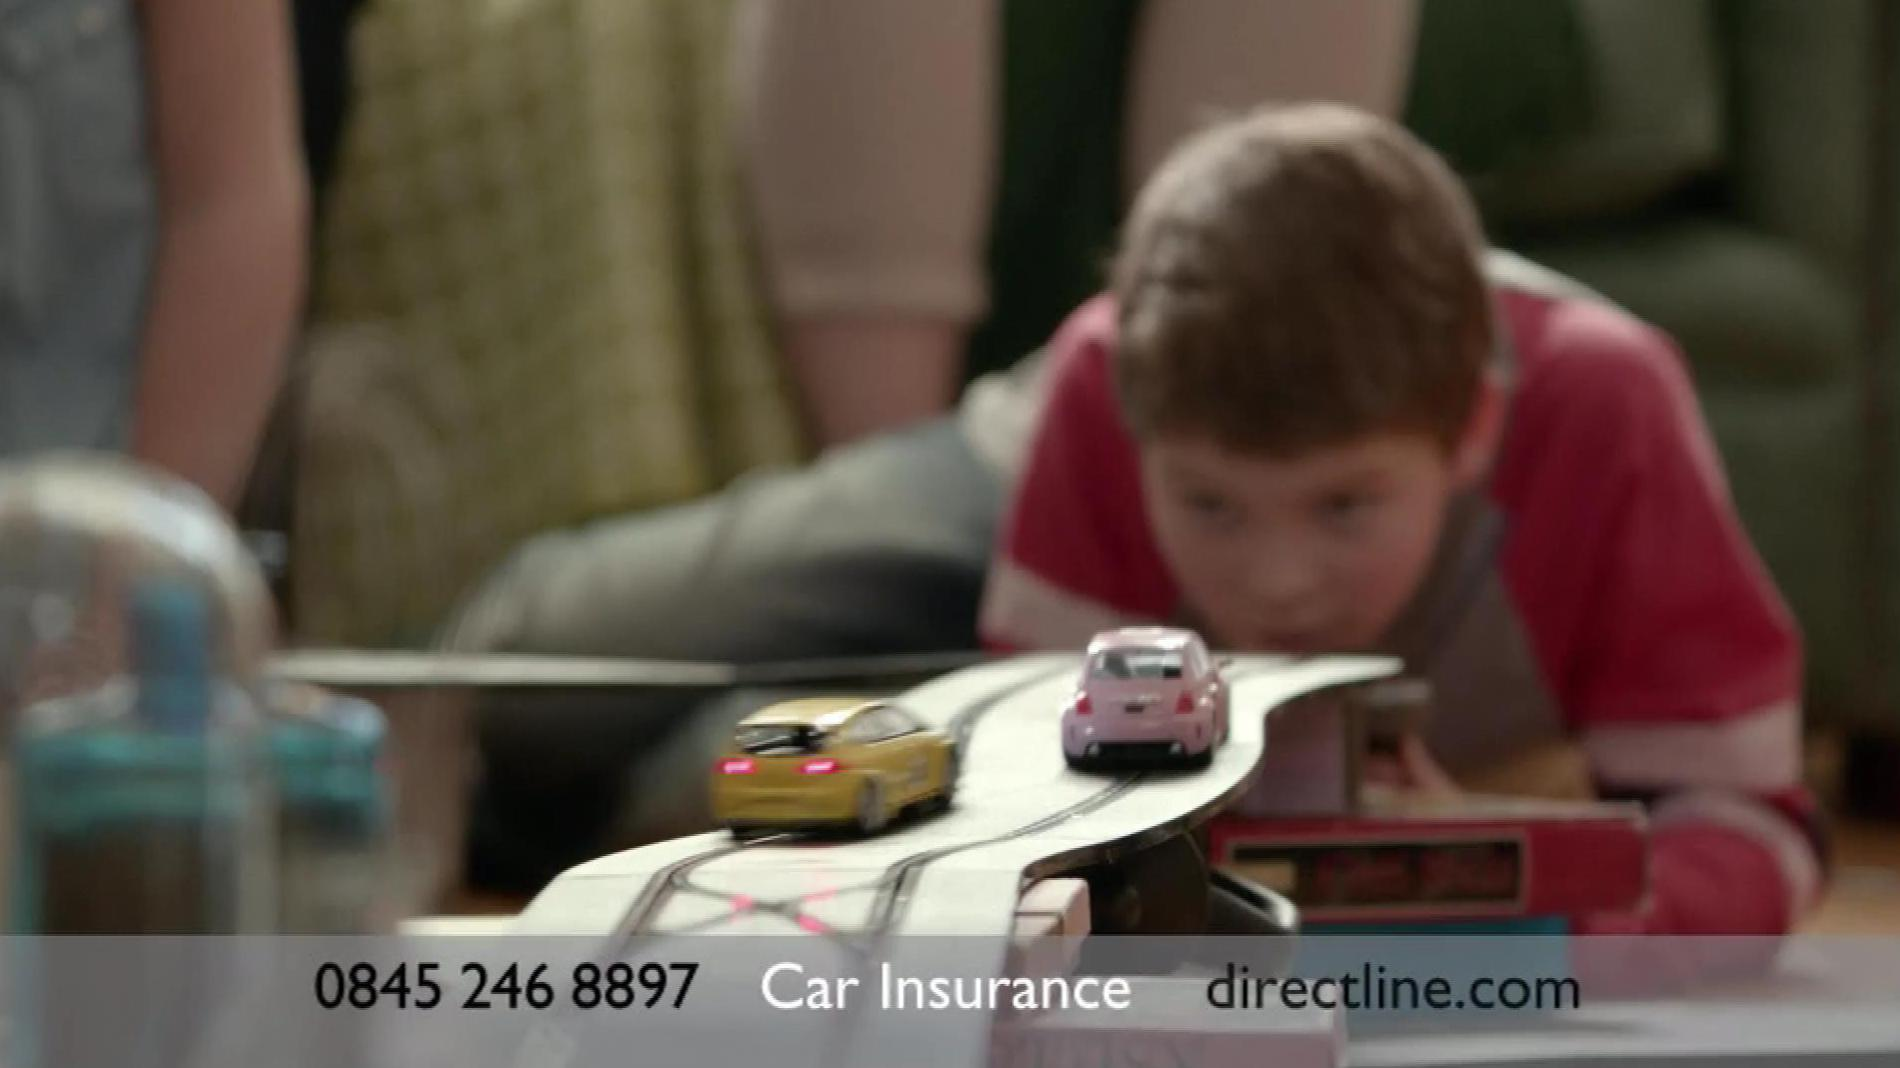 Budget House Insurance Reviews Home Insurance Direct Line